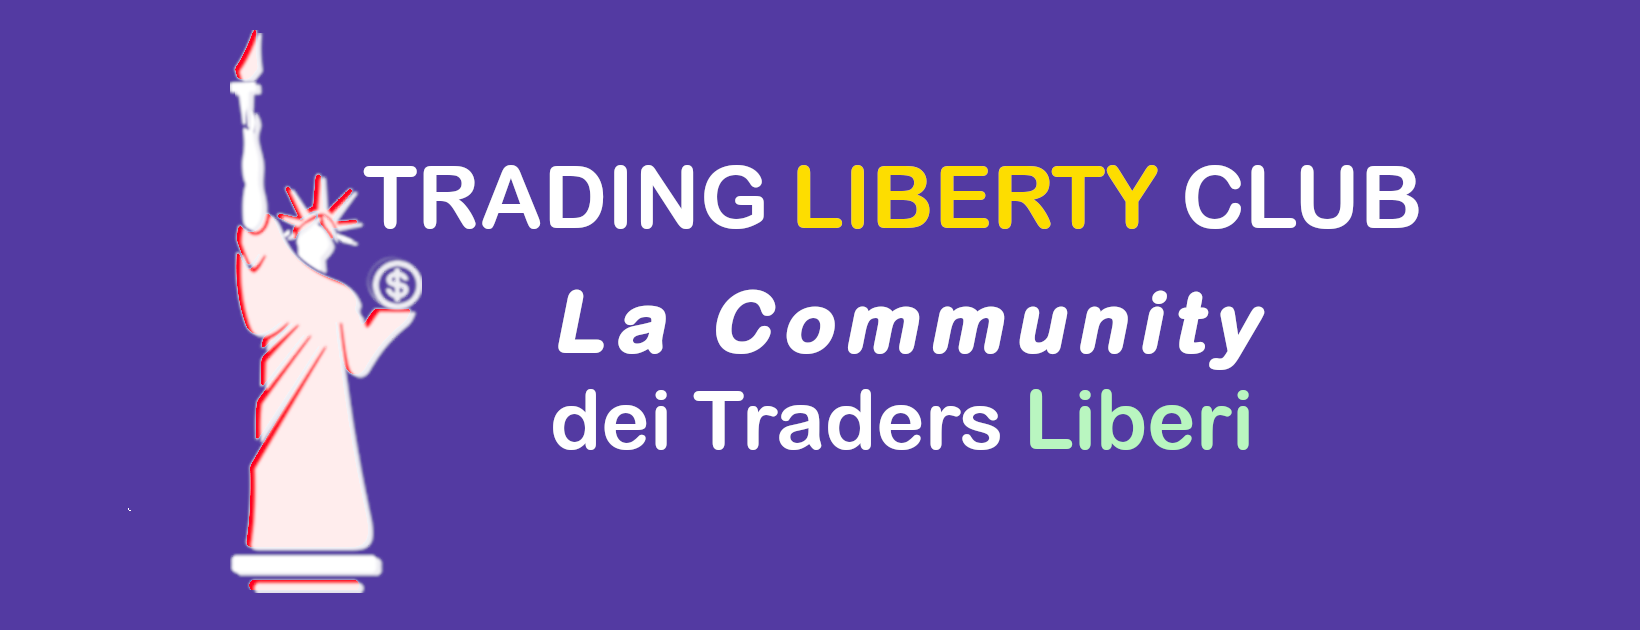 Logo Trading Liberty Club